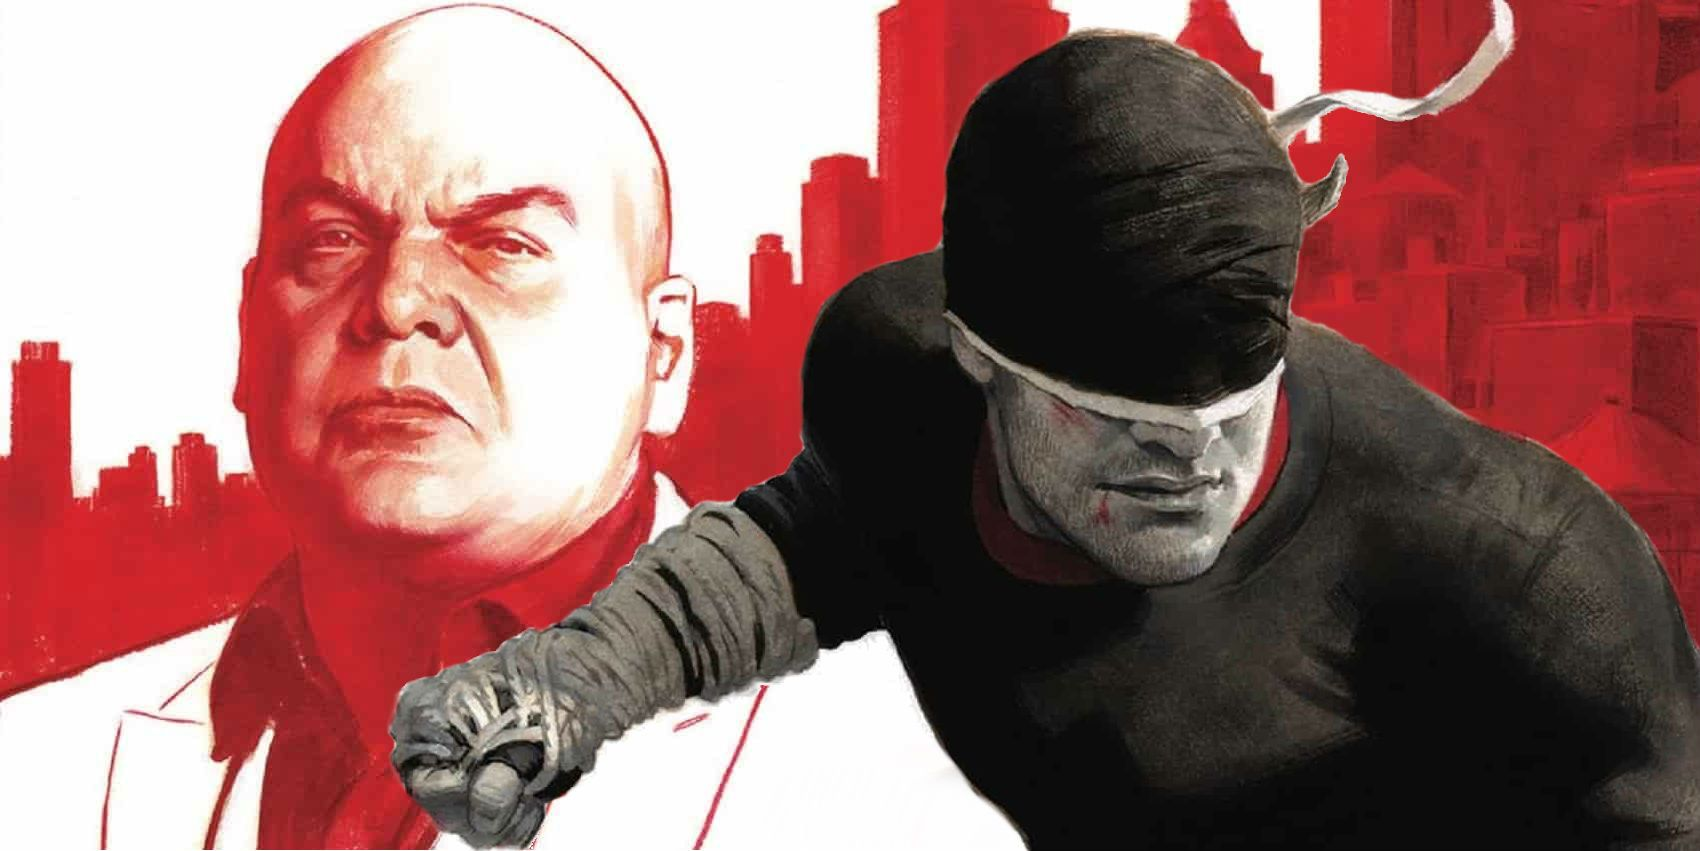 Daredevil Was One of Netflix's More Popular Shows, Report Says